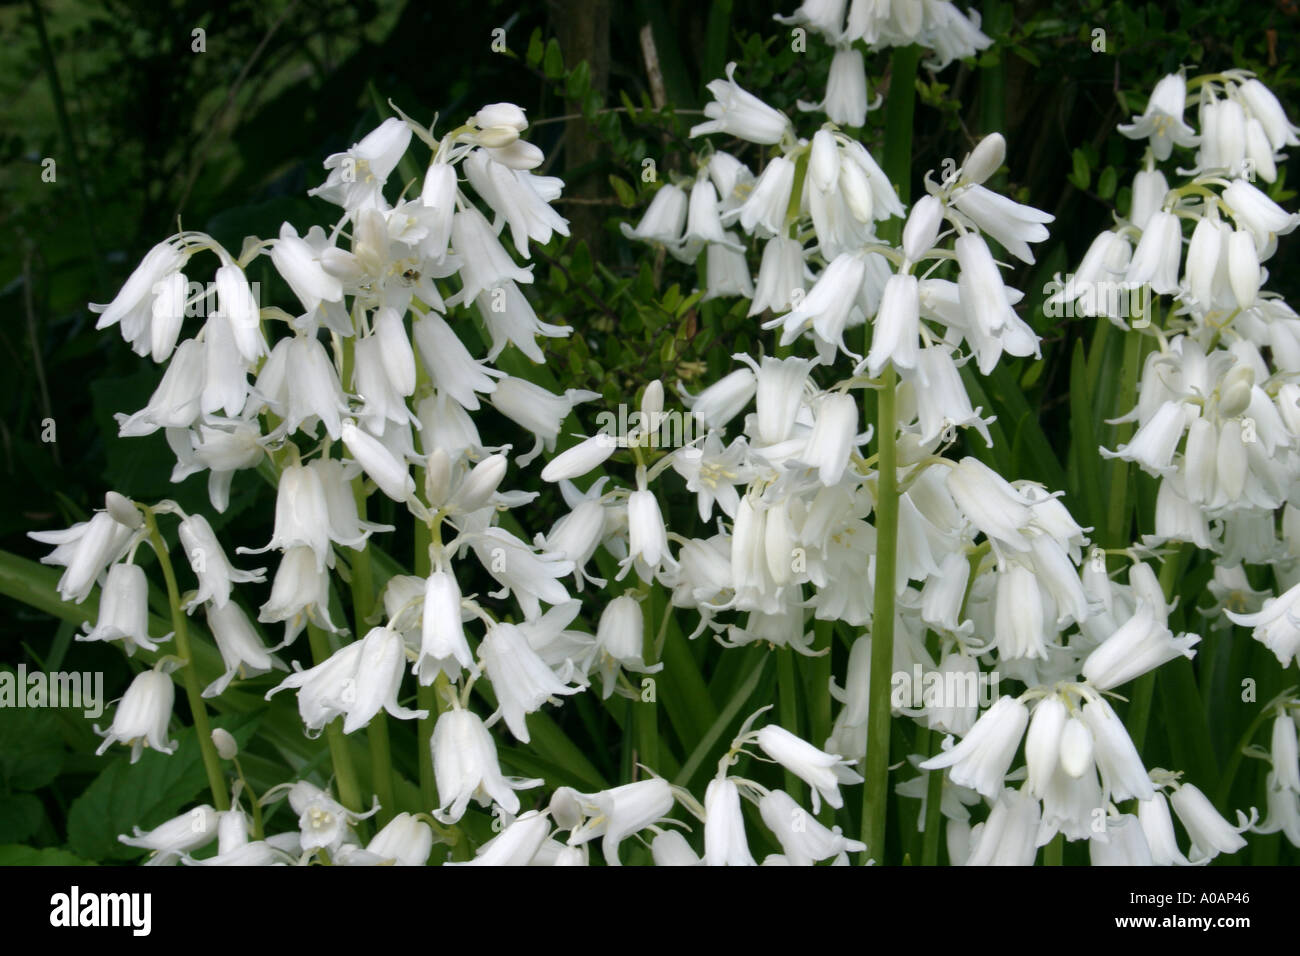 Flowers of white variety of wild hyacinth or bluebell botanical name flowers of white variety of wild hyacinth or bluebell botanical name hyacinthoides non scripta or endymion nonscriptus mightylinksfo Gallery